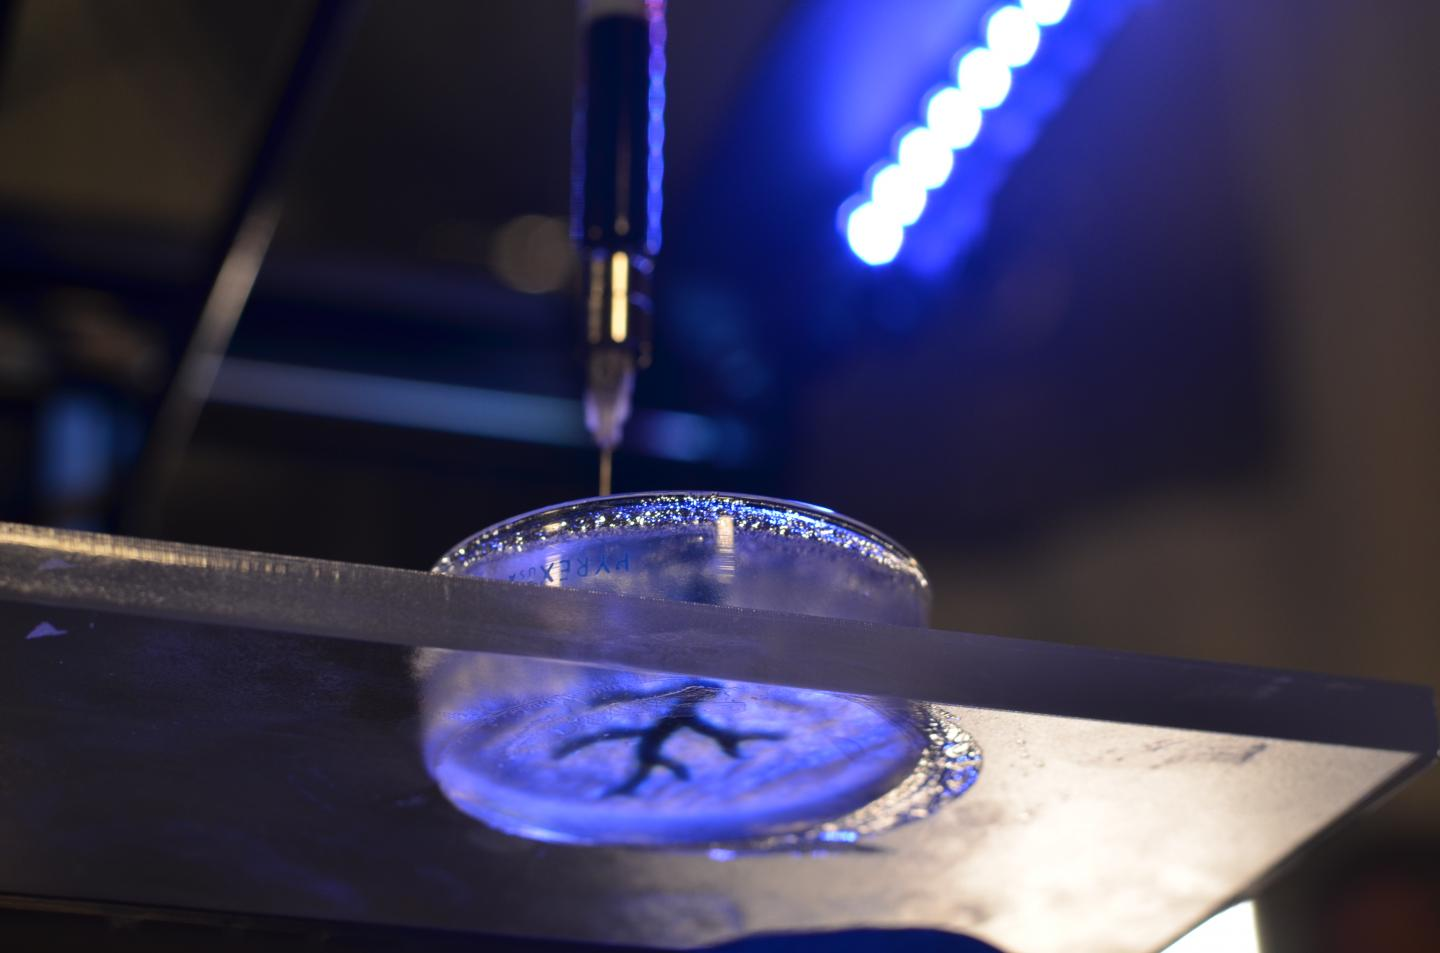 Researchers hack off-the-shelf 3-D printer for 3-D bioprinting